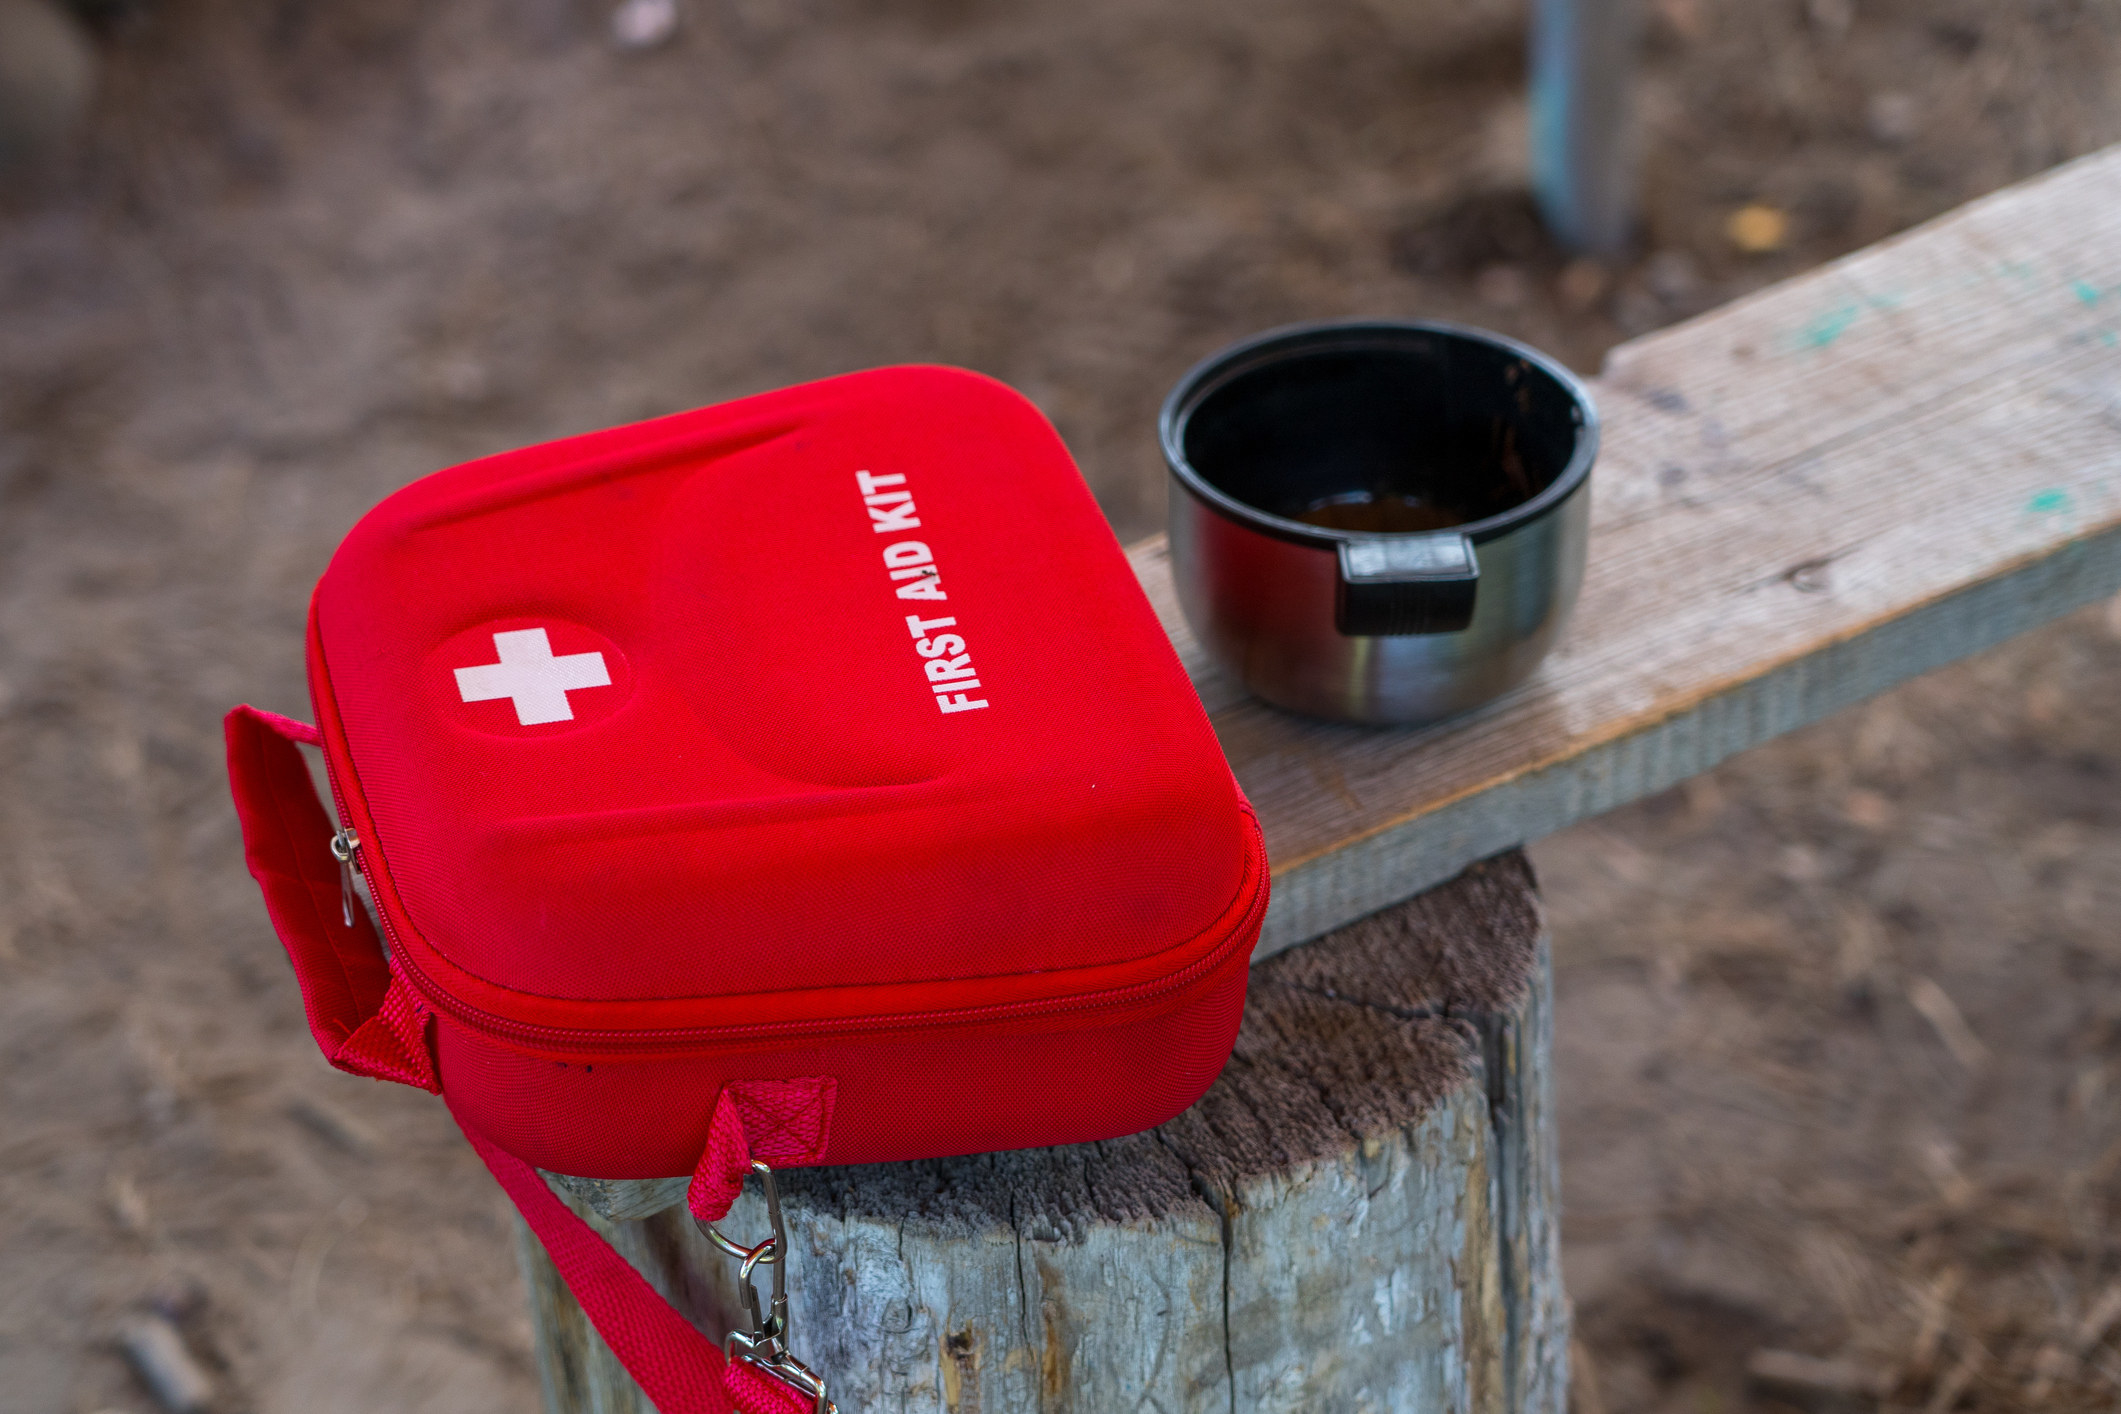 red first aid kit case on wooden bench